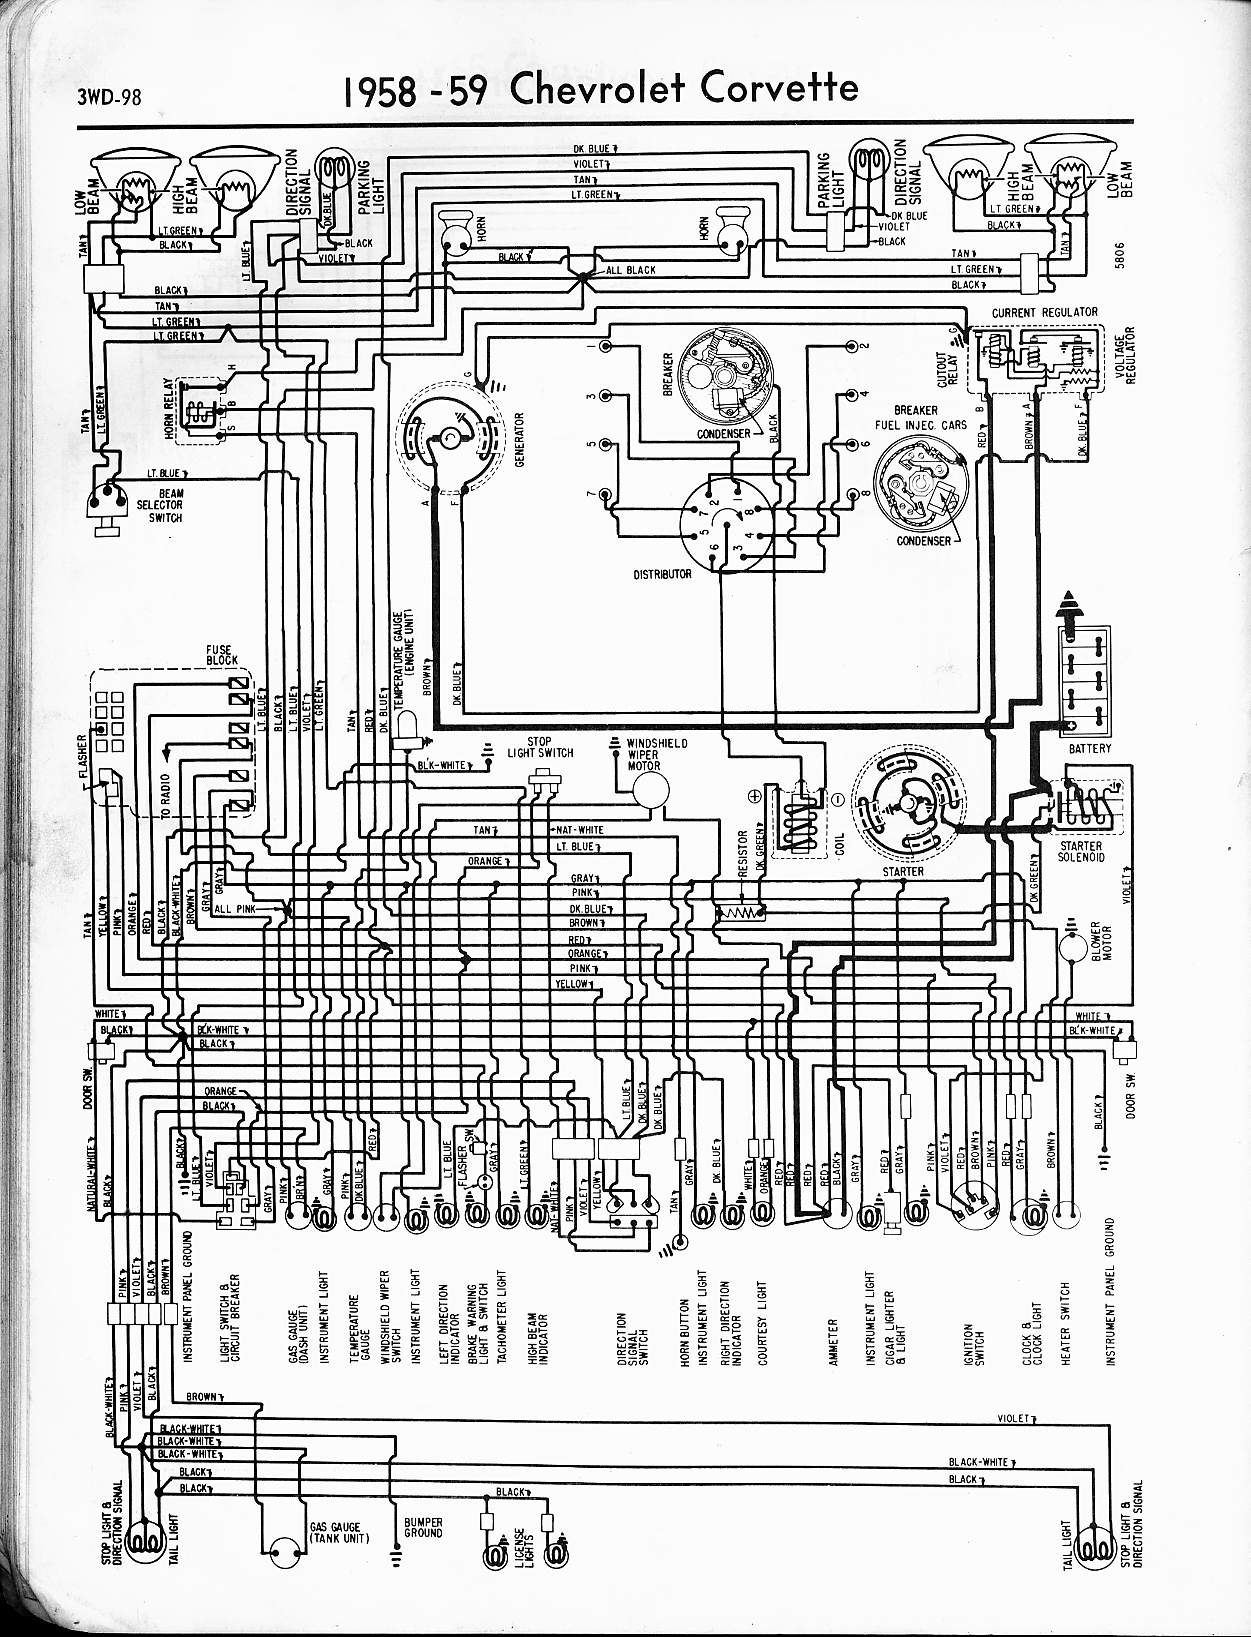 MWireChev58_3WD 098 57 65 chevy wiring diagrams 1979 corvette wiring diagram at webbmarketing.co